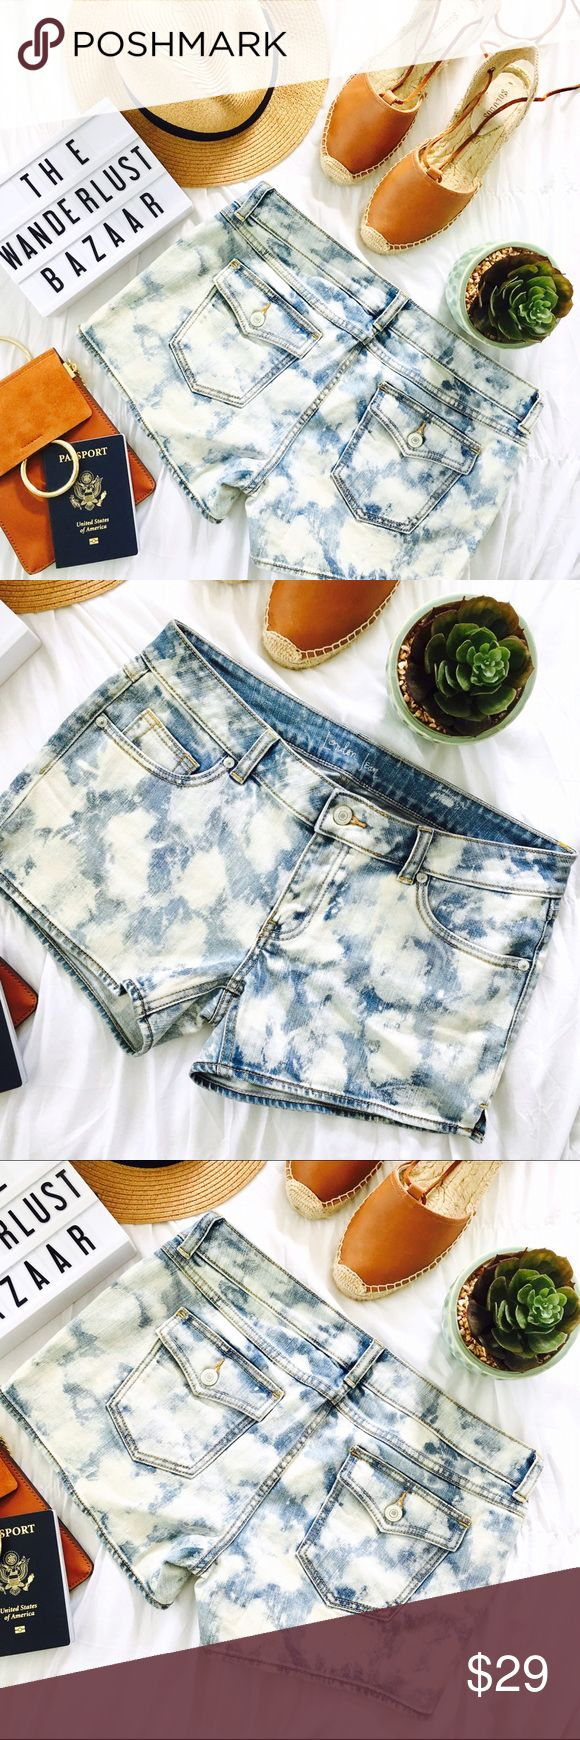 •Blue Acid Baby Denim Shorts• Whether it's a day out at the beach or riding bike these hip acid jean wash shorts will create a fun distressed look to any outfit!  •Color: Denim blue/white •Main Material: 98% cotton, 2% spandex •Style: Mid-waist acid wash shorts •Closure: Button/zipper  •Size: 4 - Please note these shorts do stretch and run more like a 6/8 than a size 4  •Photos are of actual product •Price is firm •10% discount on bundles of two or more •Photo Credit: The Wanderlust Bazaar…